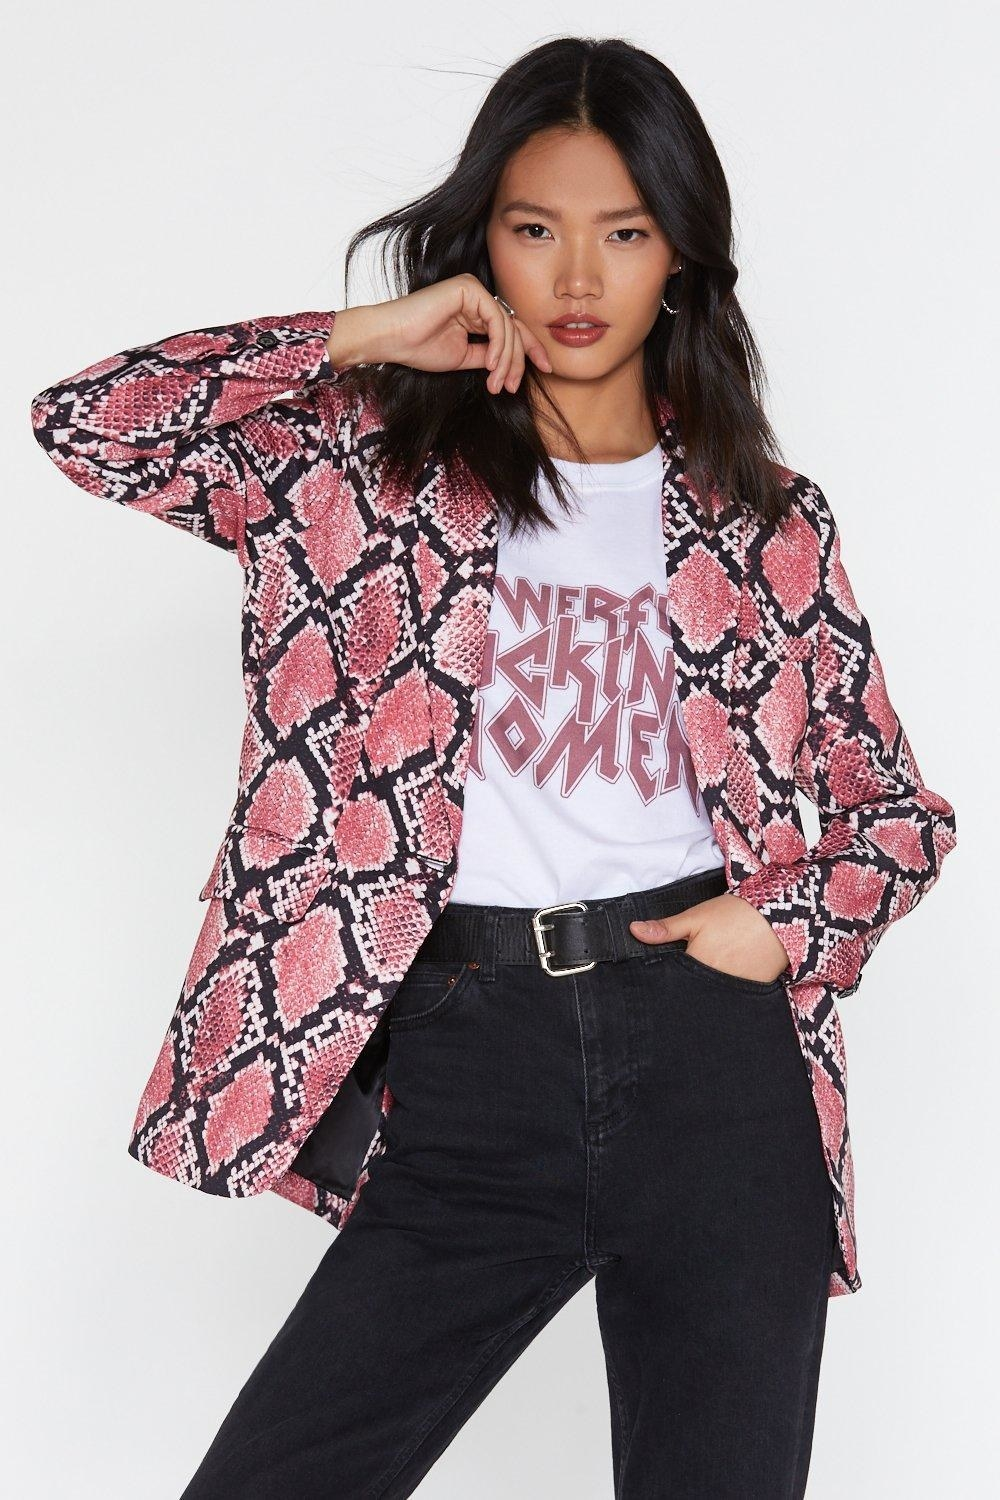 Get it on sale from from Nasty Gal for $45 (originally $90; available in sizes S-L).